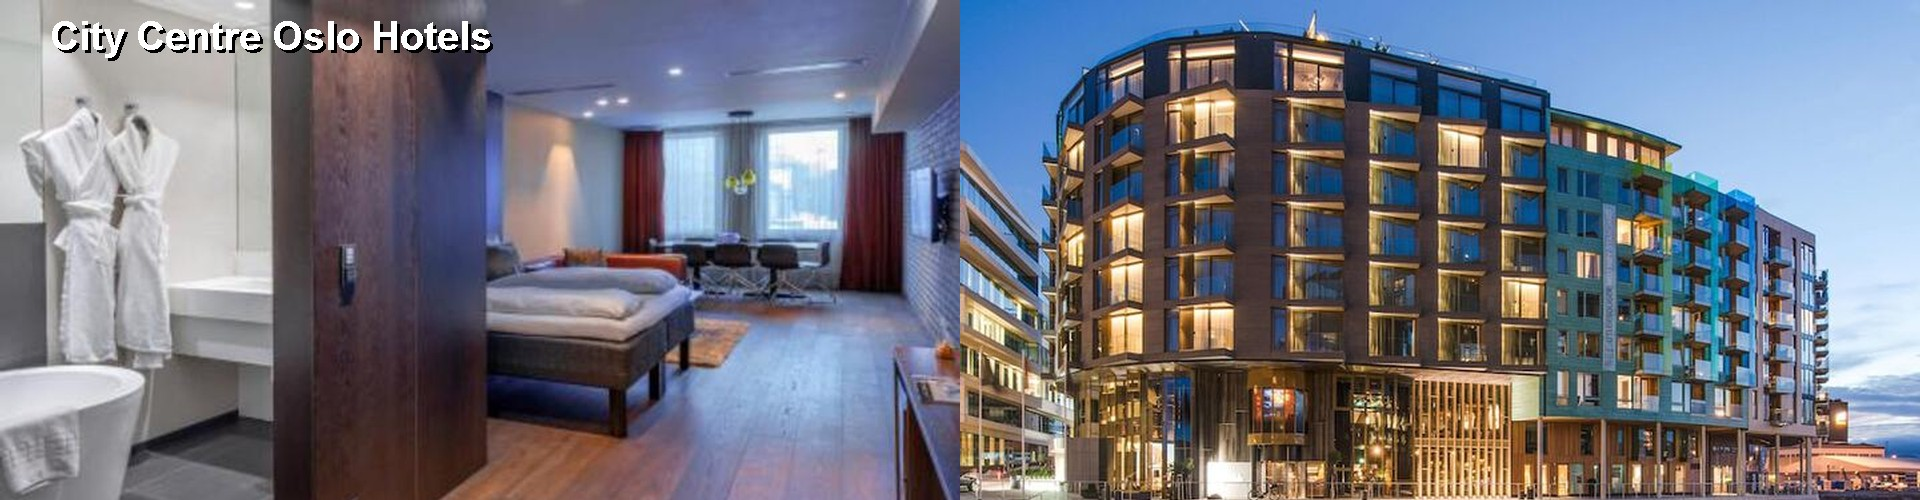 5 Best Hotels near City Centre Oslo